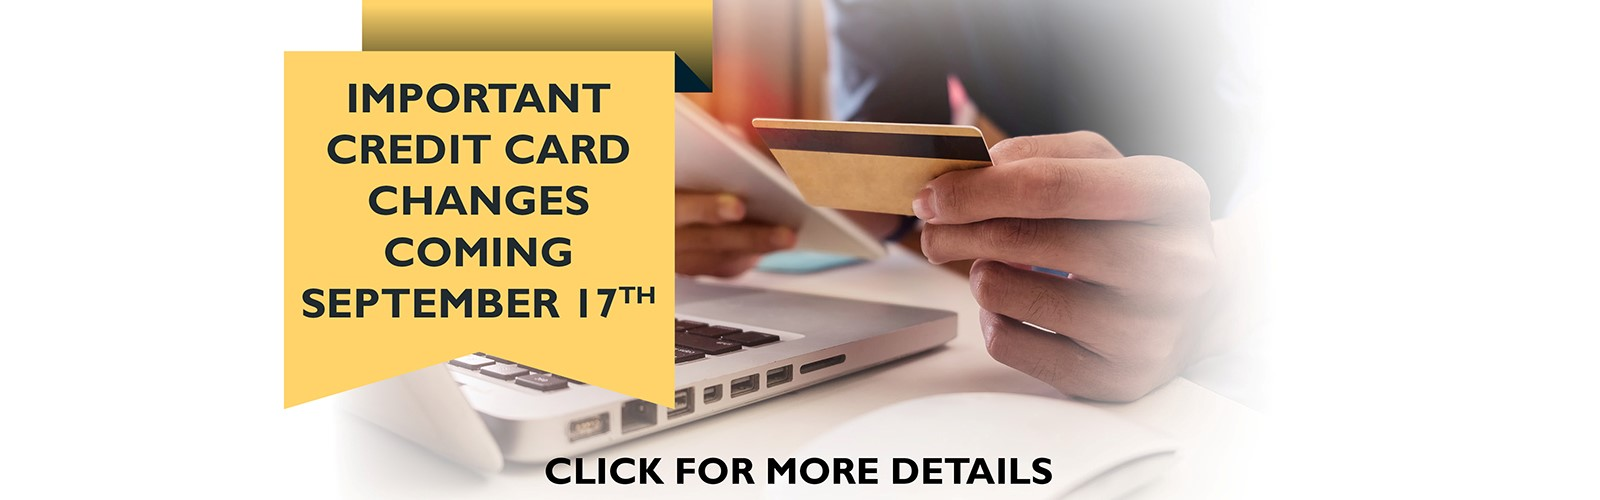 Important Credit Card Changes Coming September 17th